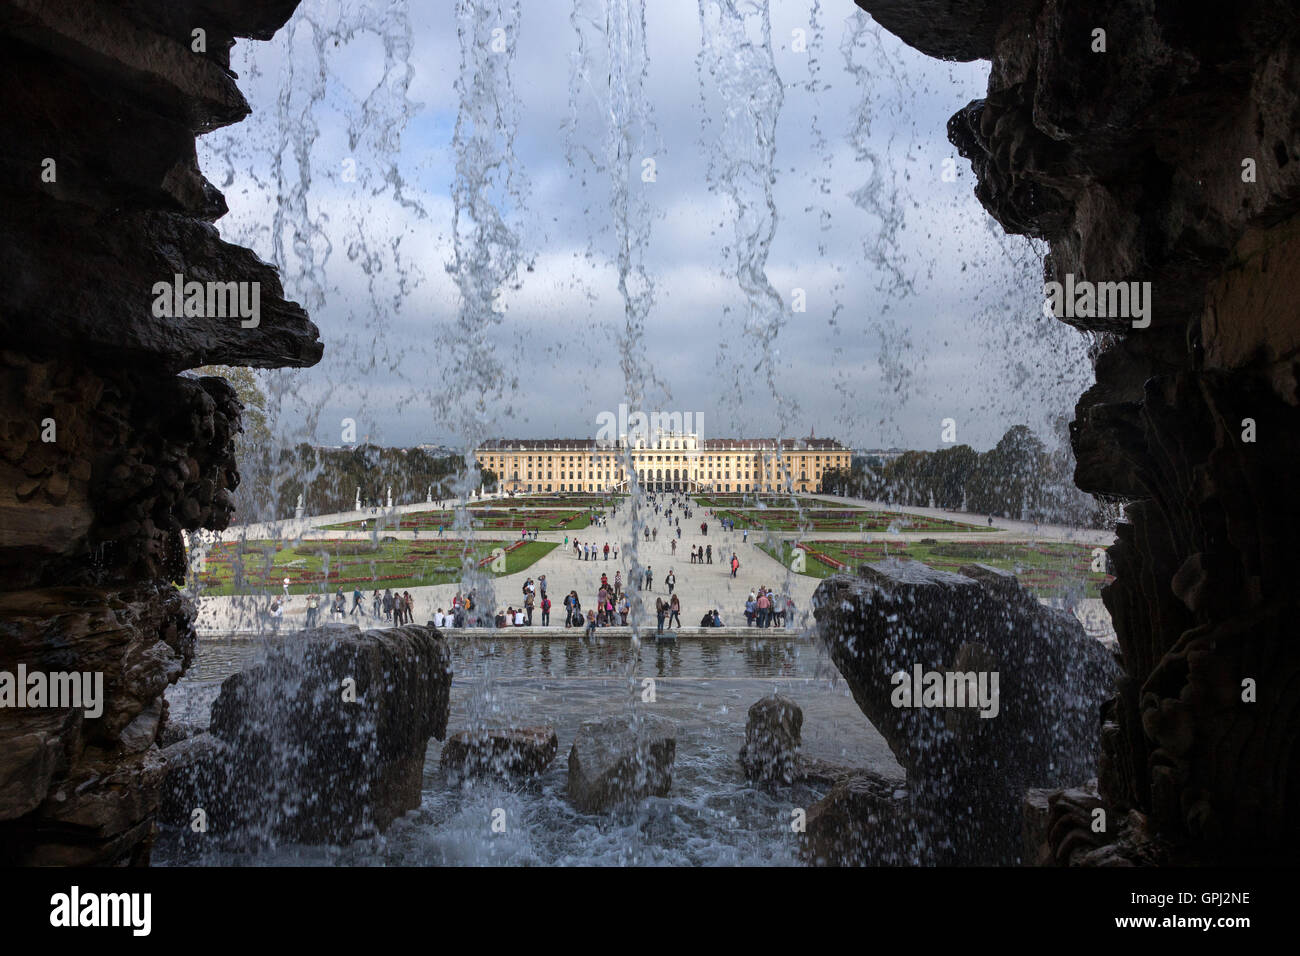 View to Schönbrunn Palace from behind the Neptune fountain in Vienna, Austria - Stock Image